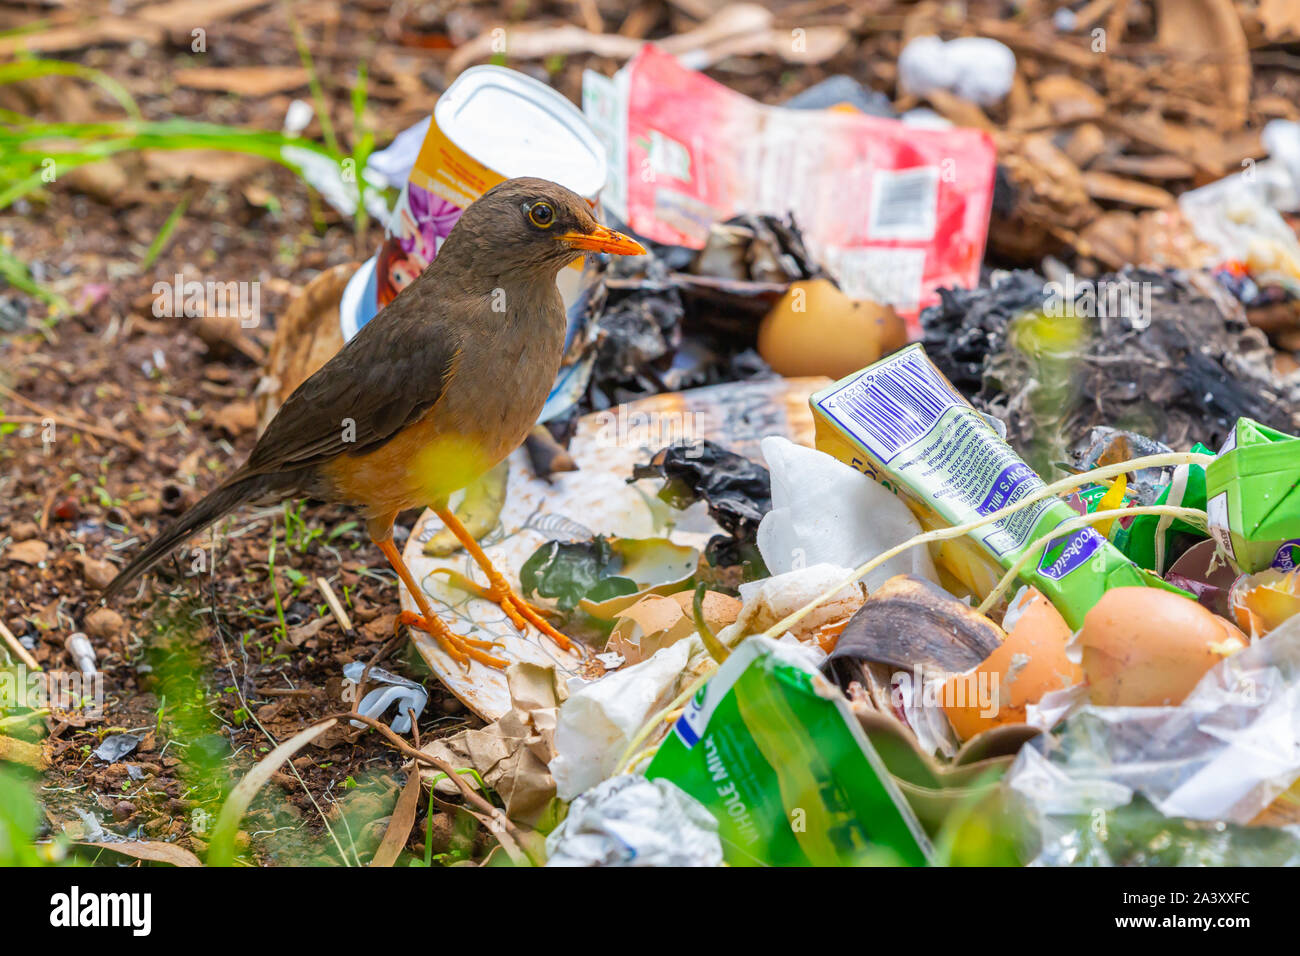 Nanyuki, Laikipia county, Kenya – June 20th, 2019: Wildlife photograph of Olive thrush (Turdus olivaceus) bird foraging on ground through discarded ru Stock Photo